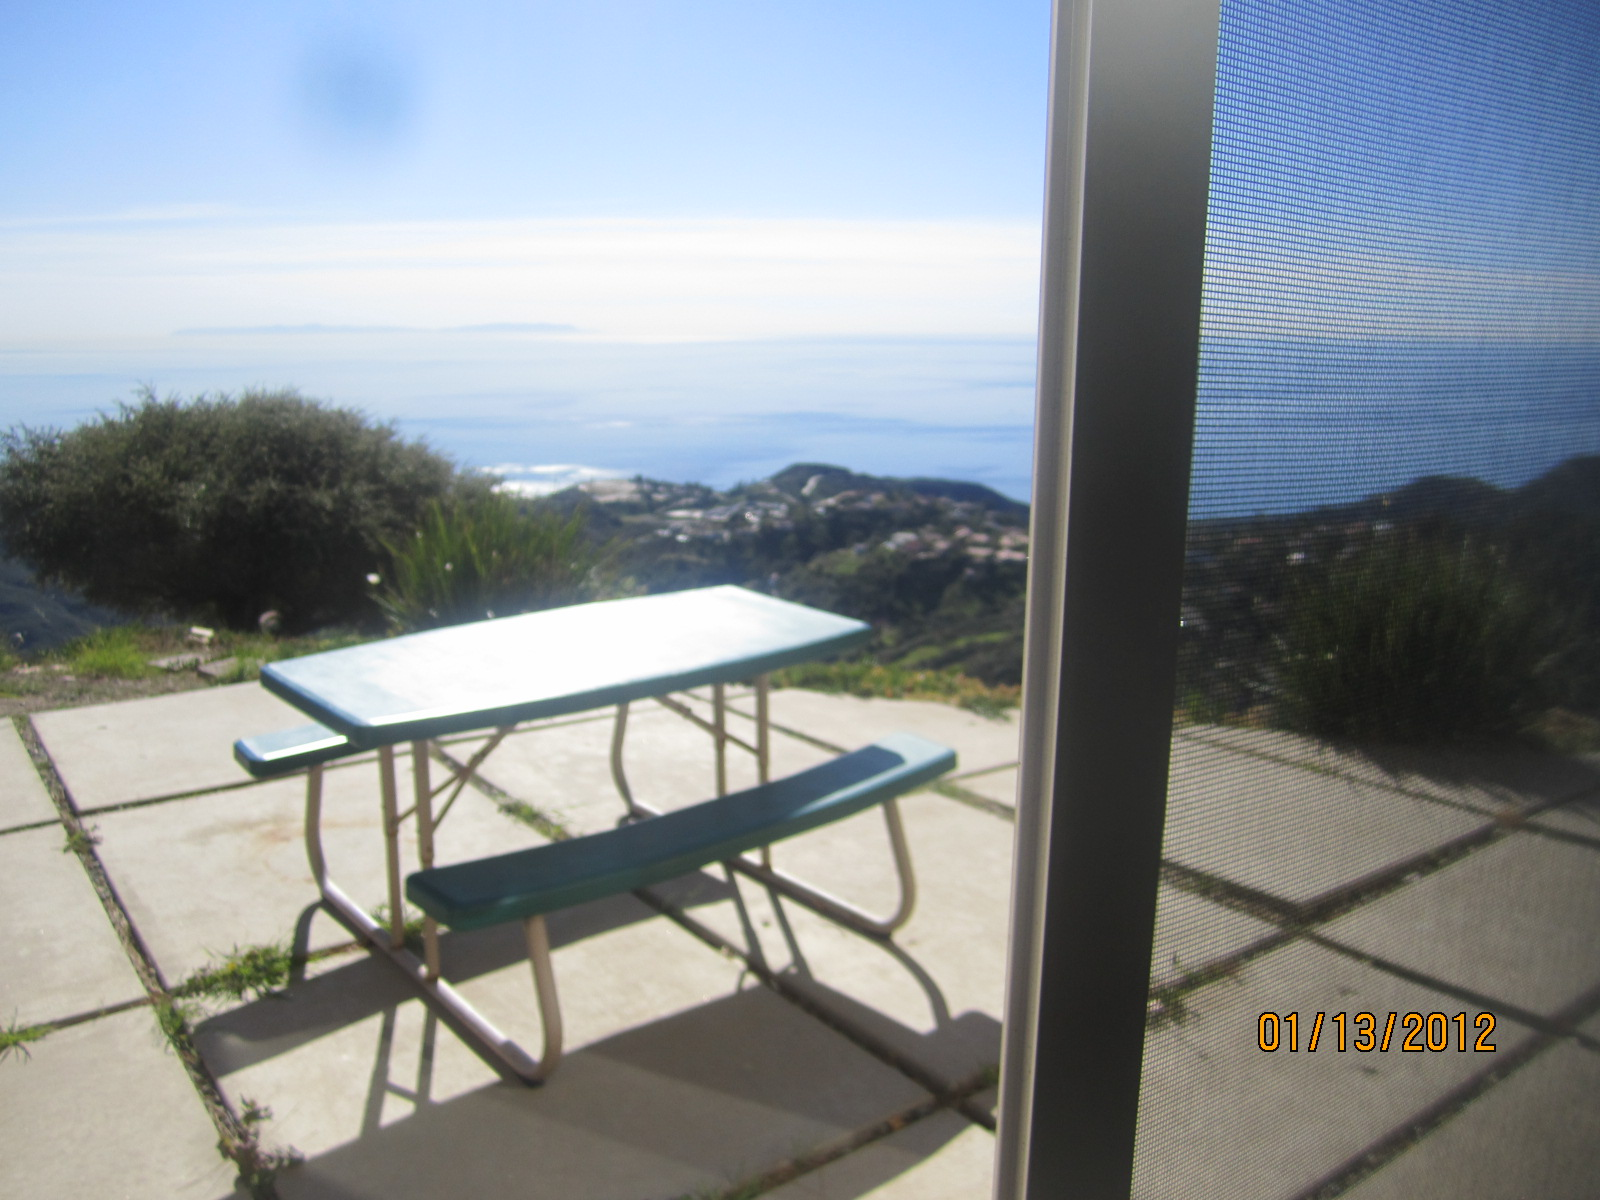 Hideaway Screen Doors Malibu